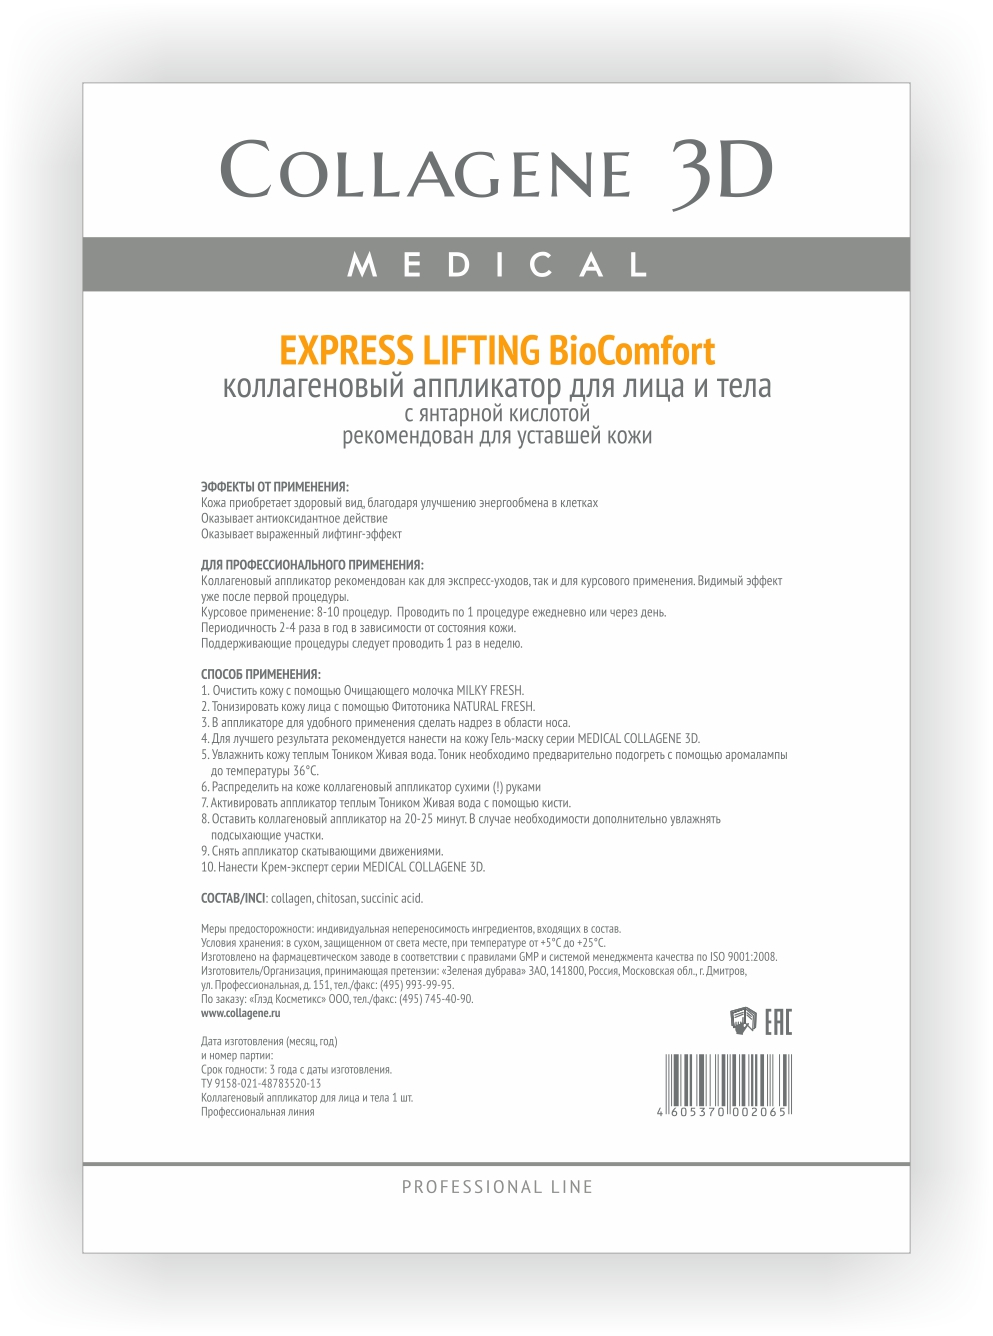 MEDICAL COLLAGENE 3D Аппликатор коллагеновый с янтарной кислотой для лица и тела Express Lifting А4